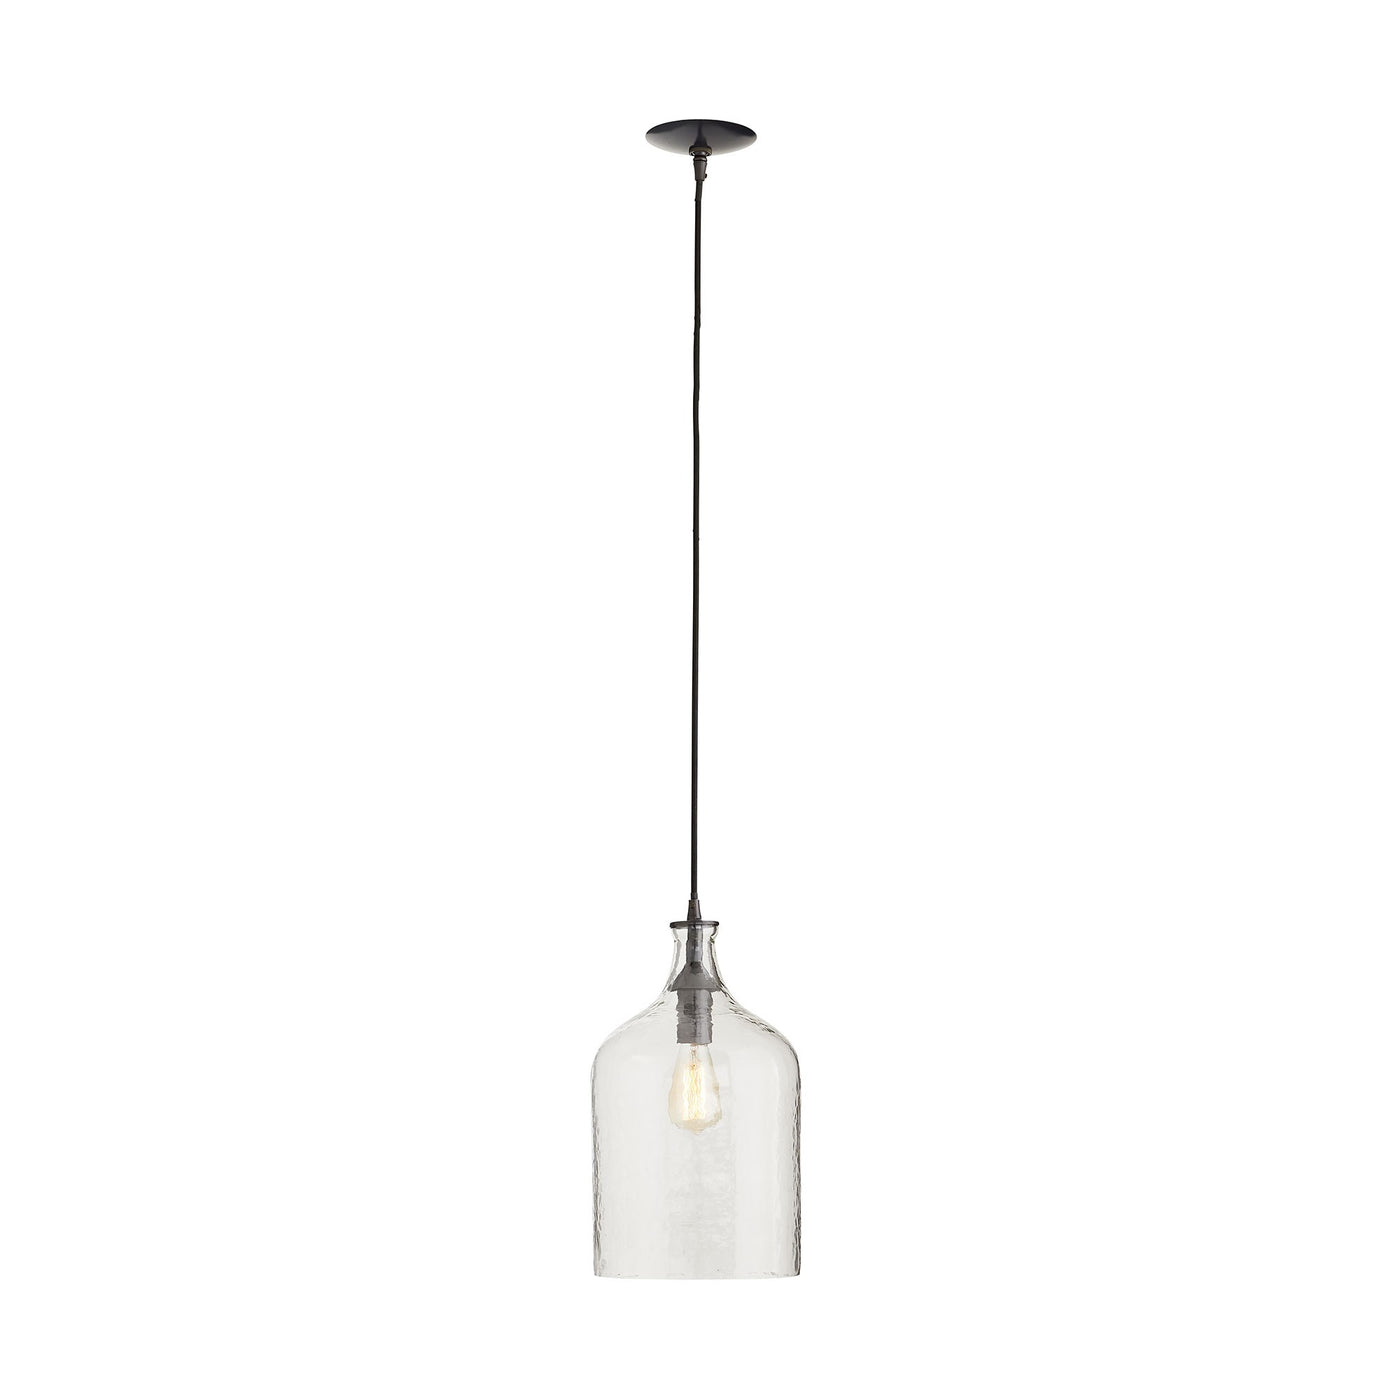 arteriors noreen pendant clear seedy glass illuminted full view